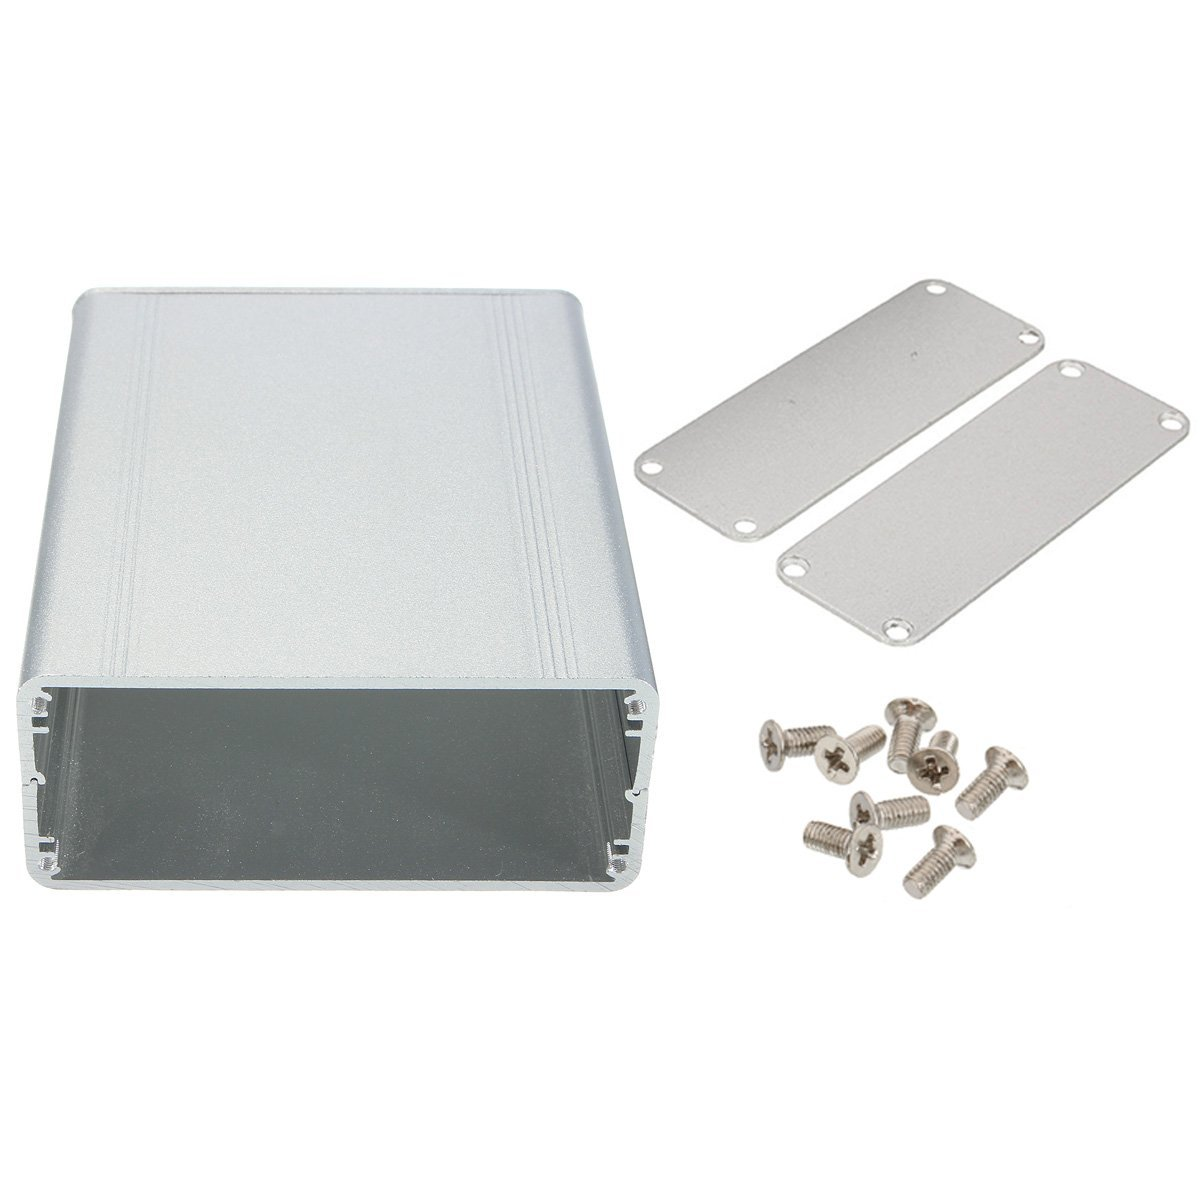 Splitted DIY Extruded Aluminum Electronic Box Project Electronic DIY Enclousure Case